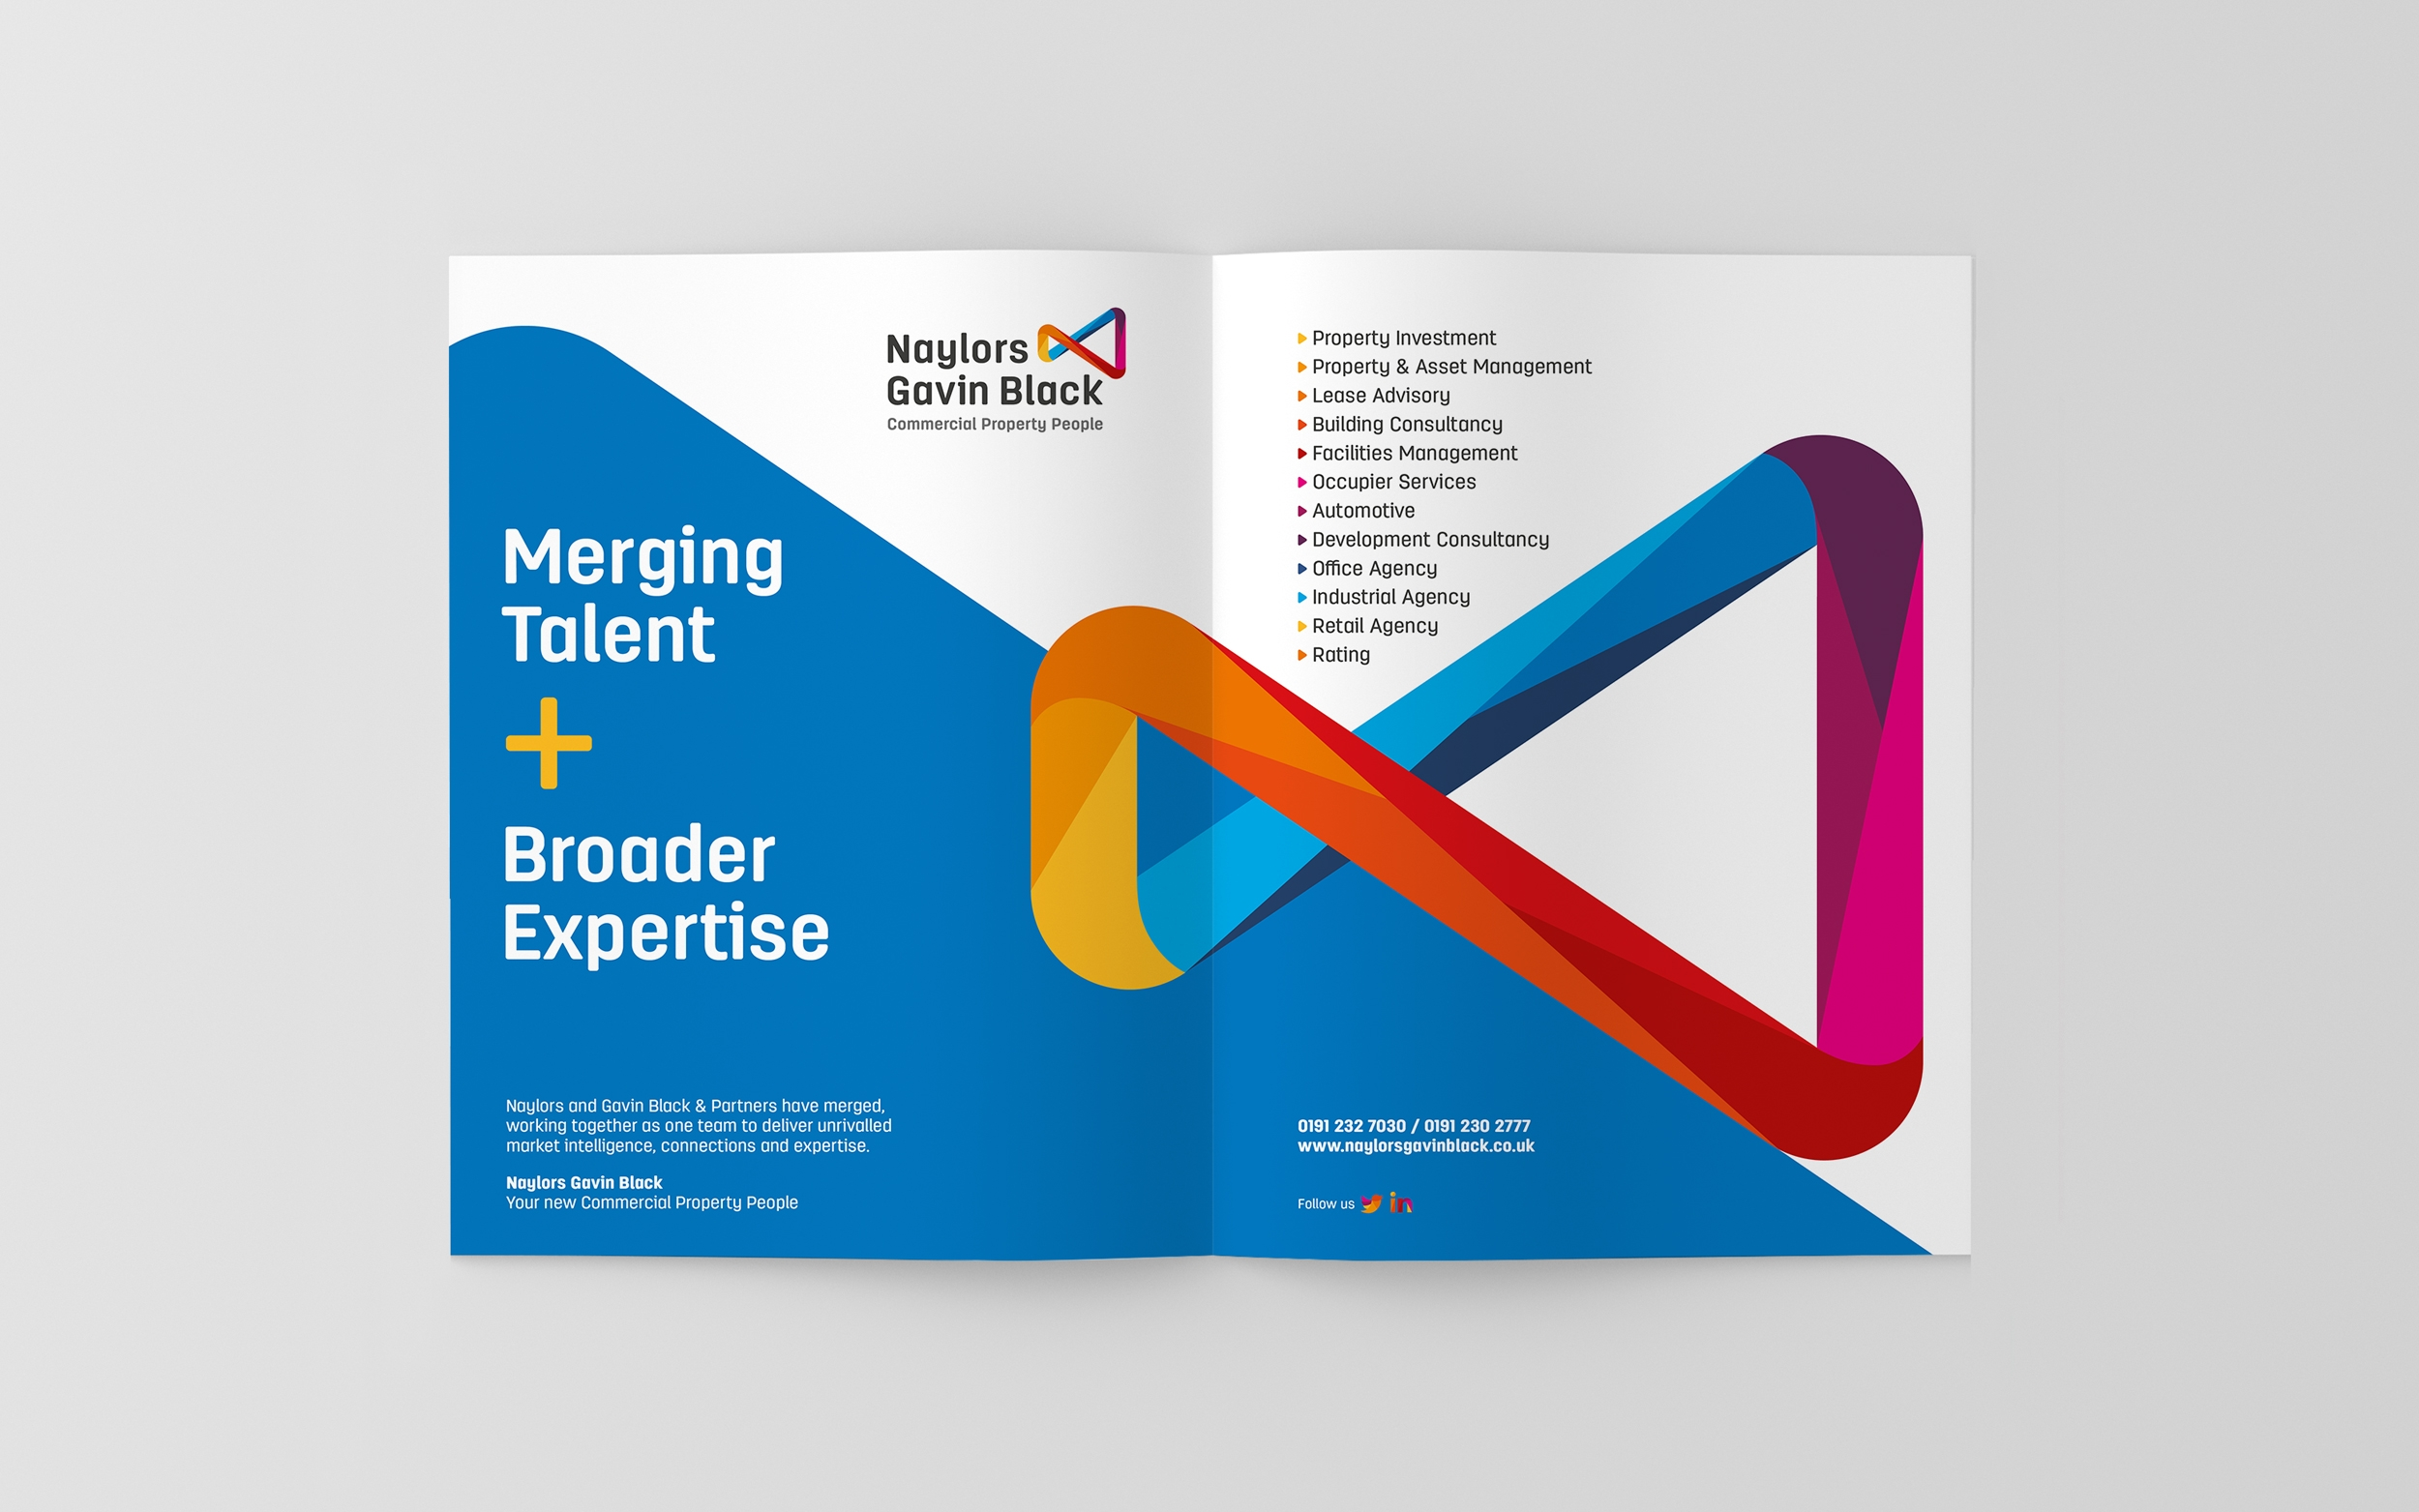 Naylors surveyors branding, brand values and brand guidelines by Altogether creative.